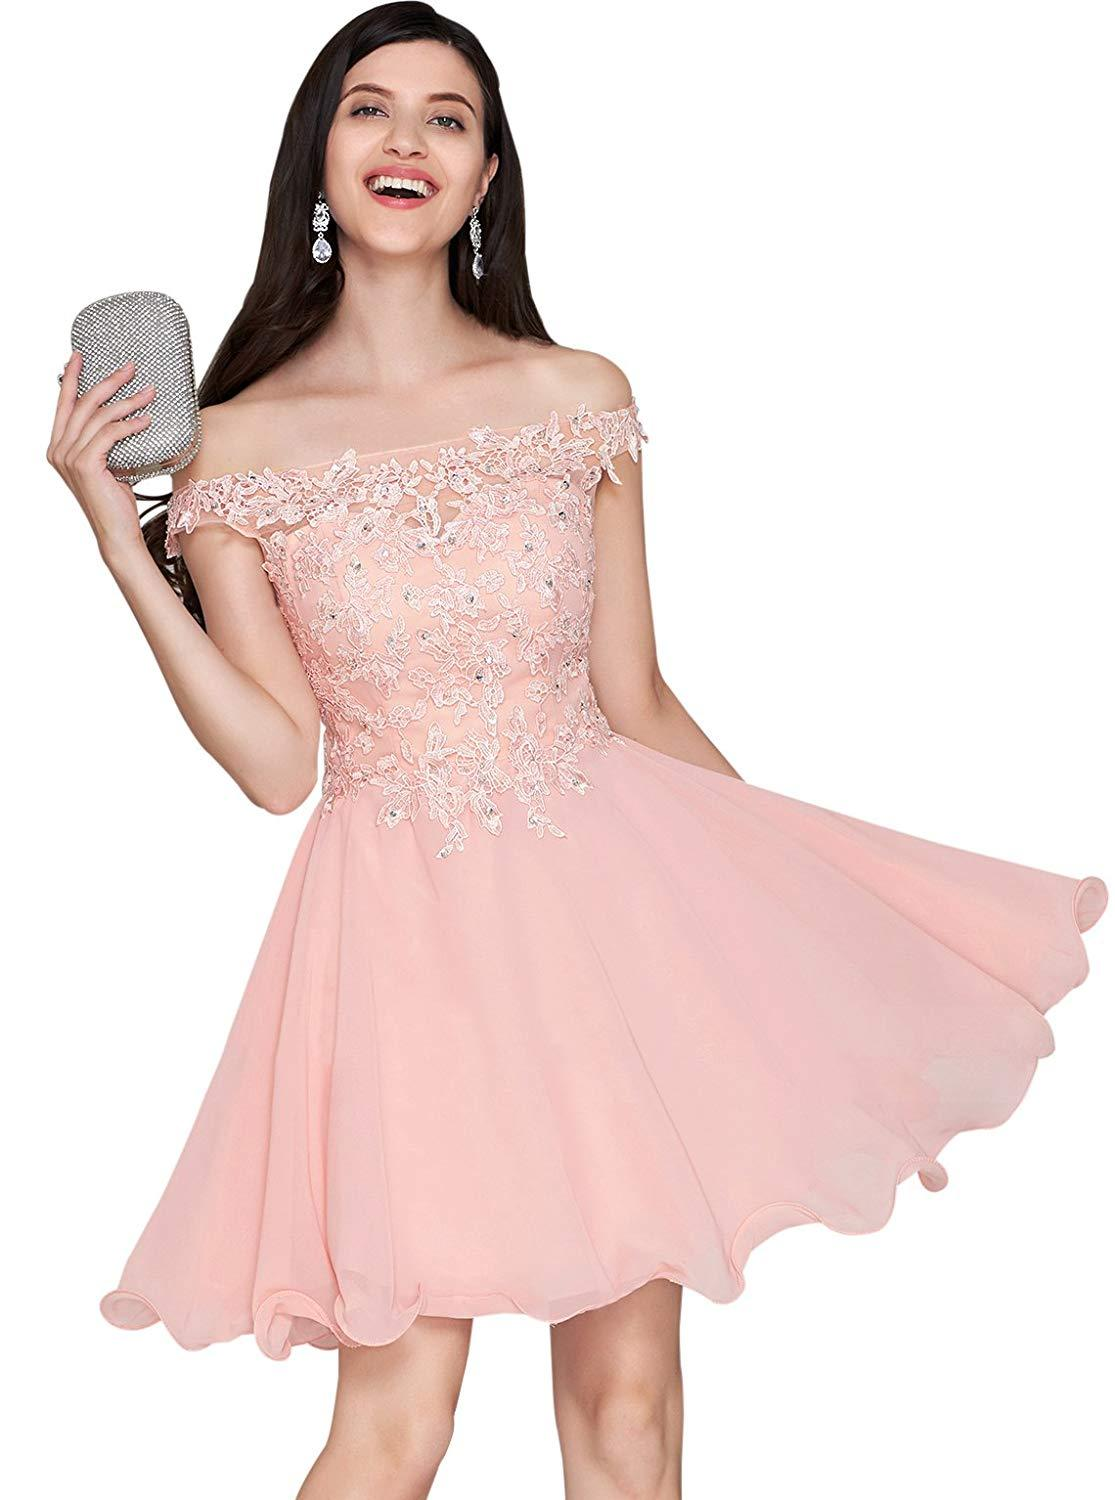 Primary image for Womens Short Chiffon Lace Applique Homecoming Dress Off Shoulder Prom Party Gown